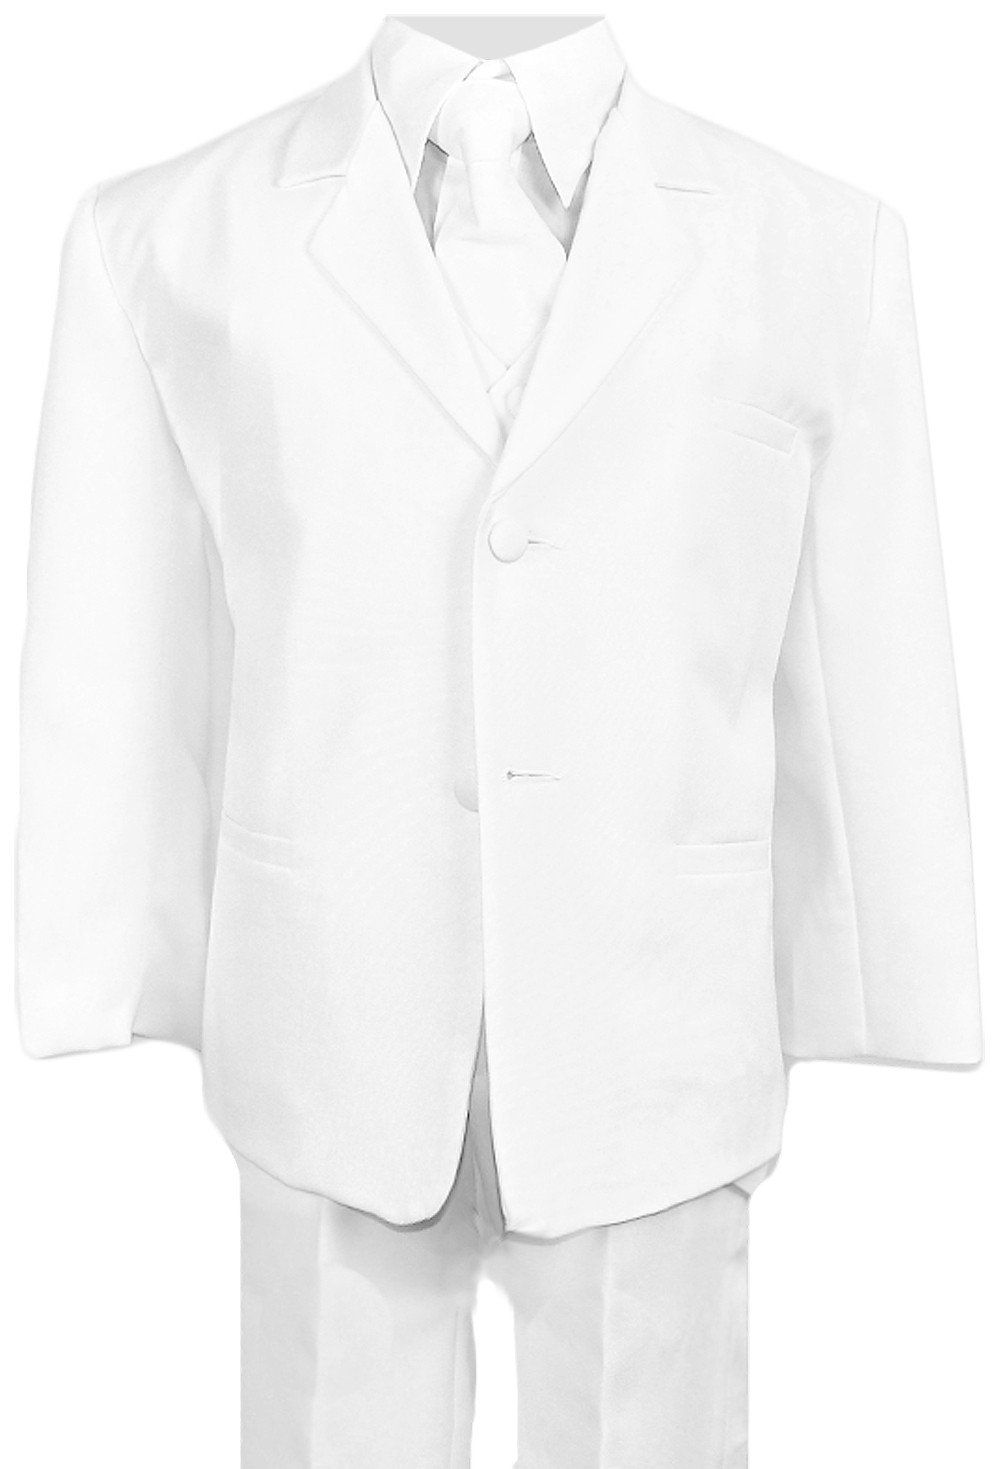 Boys Suits in White Complete Outfit Set Size 5